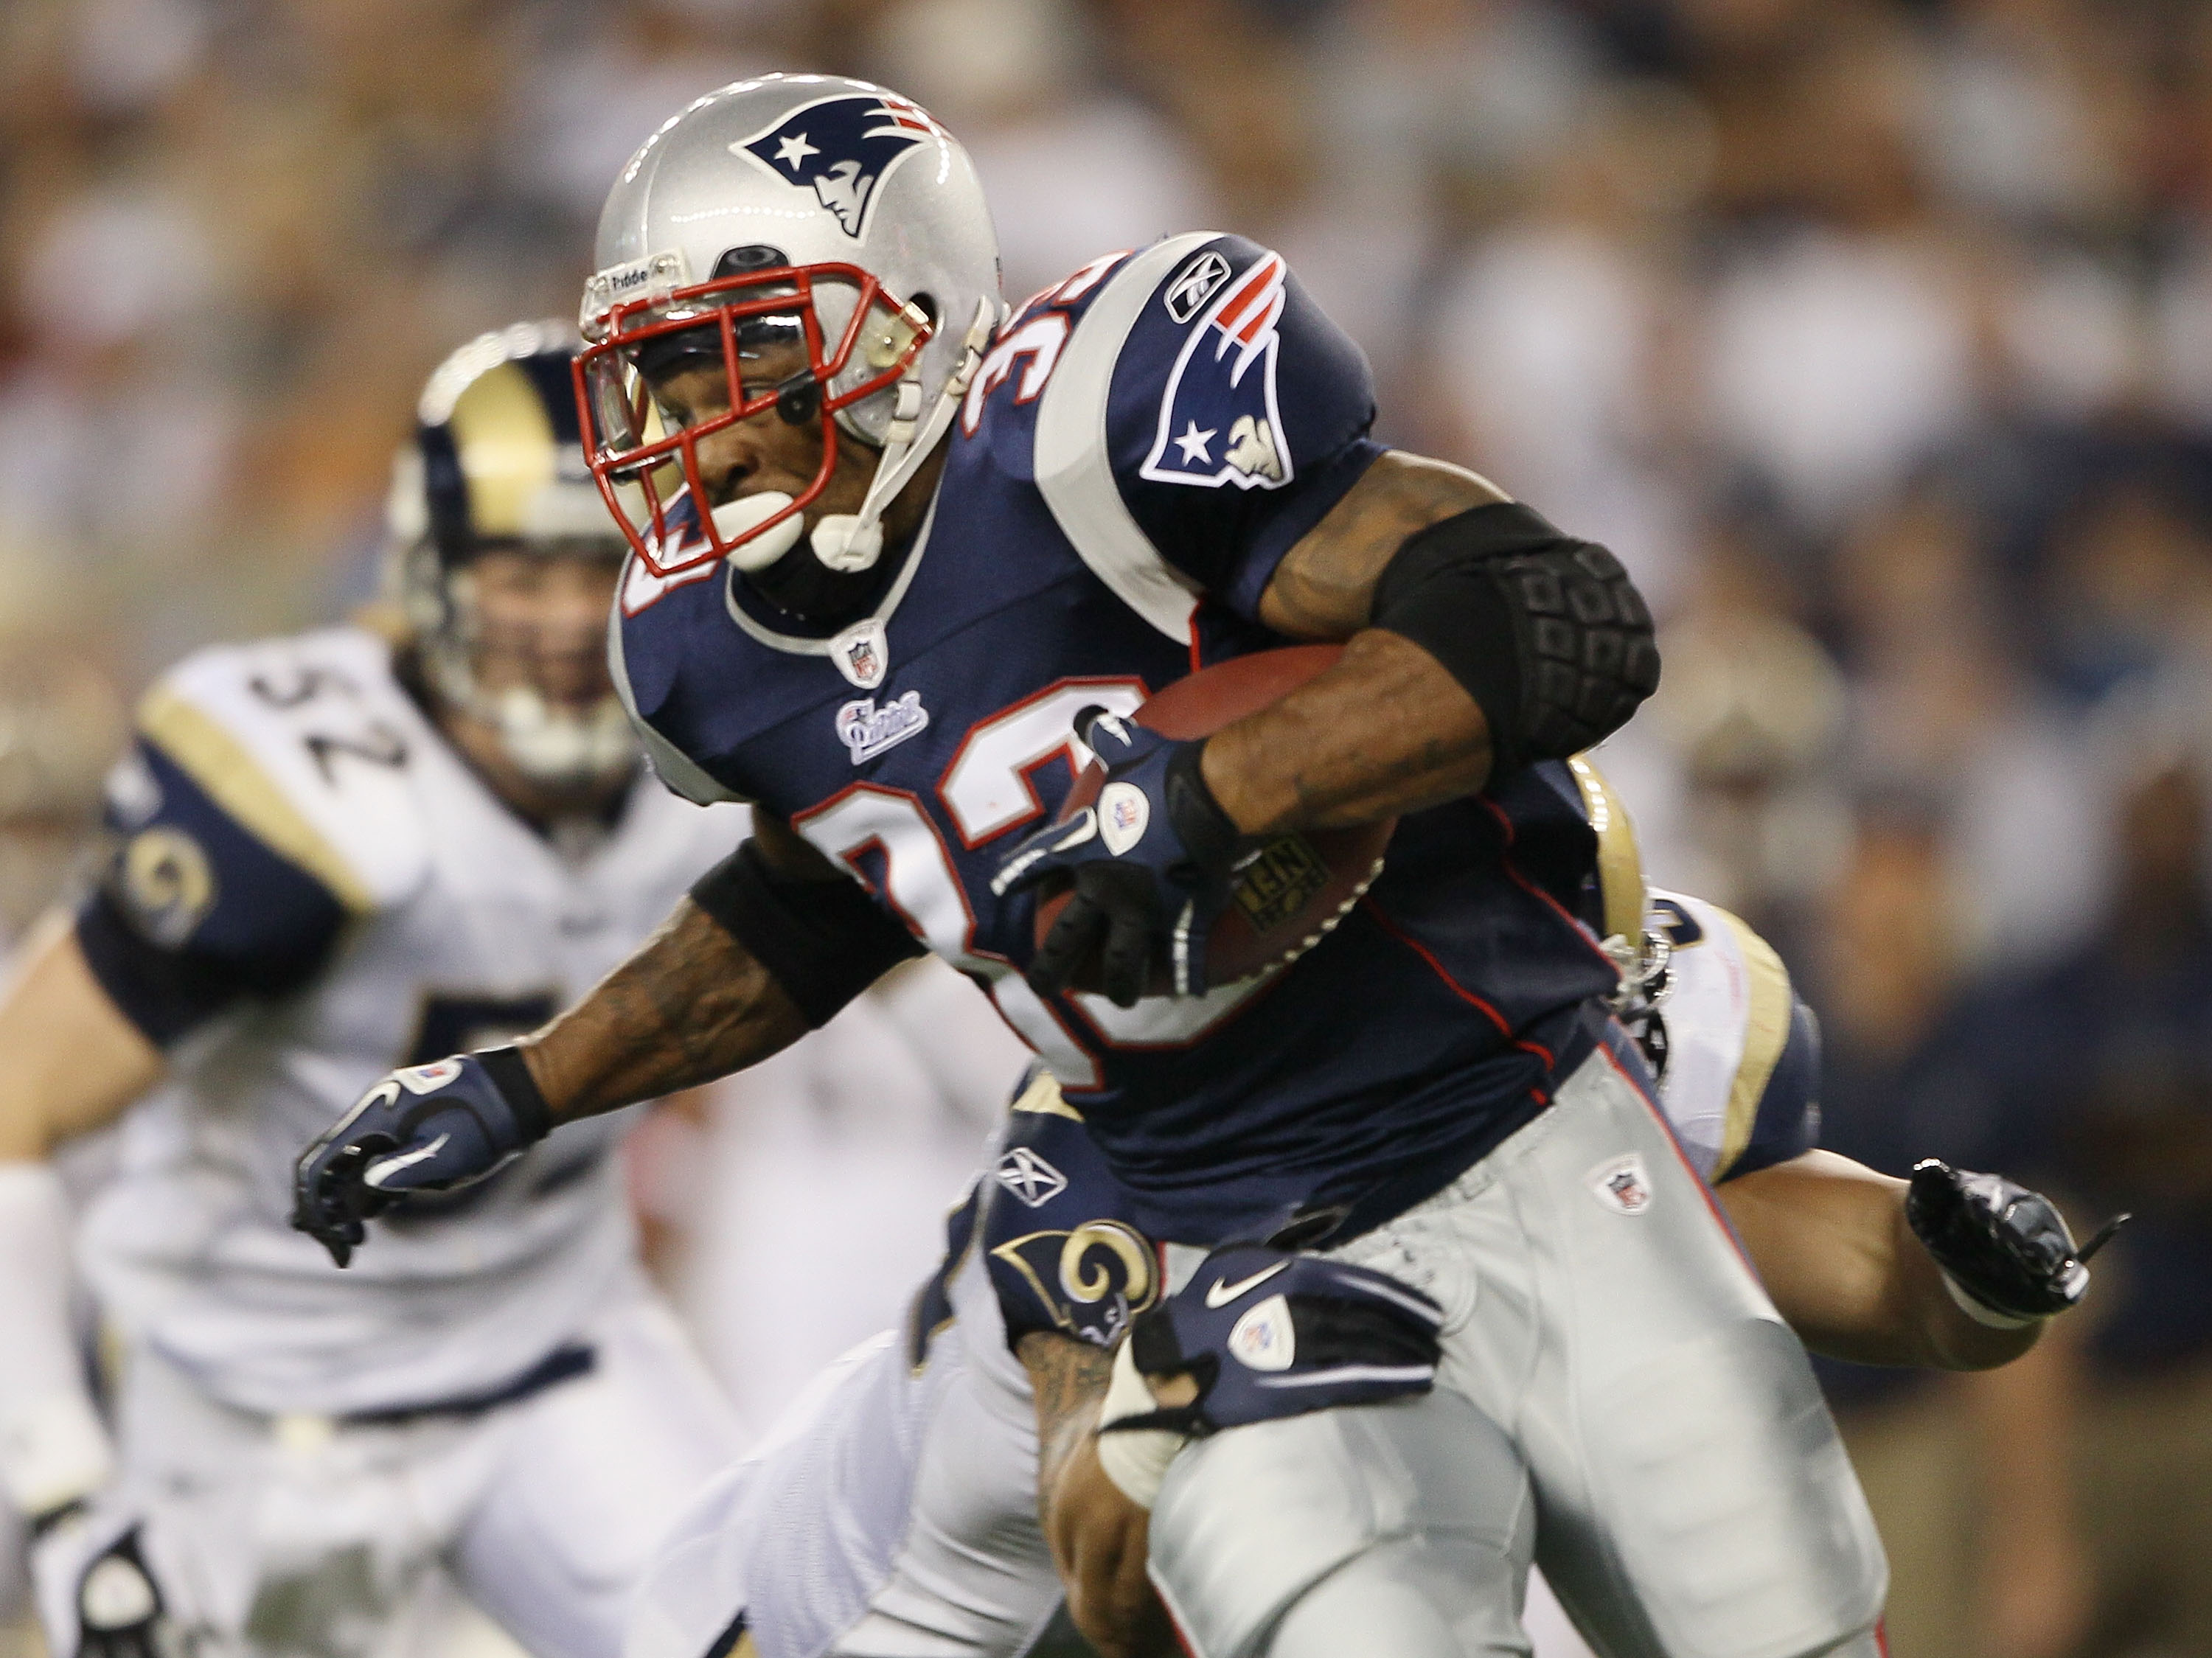 FOXBORO, MA - AUGUST 26:  Kevin Faulk #33 of the New England Patriots carries the ball in the first half against the St. Louis Rams on August 26, 2010 at Gillette Stadium in Foxboro, Massachusetts. The Rams defeated the Patriots 36-35. (Photo by Elsa/Gett